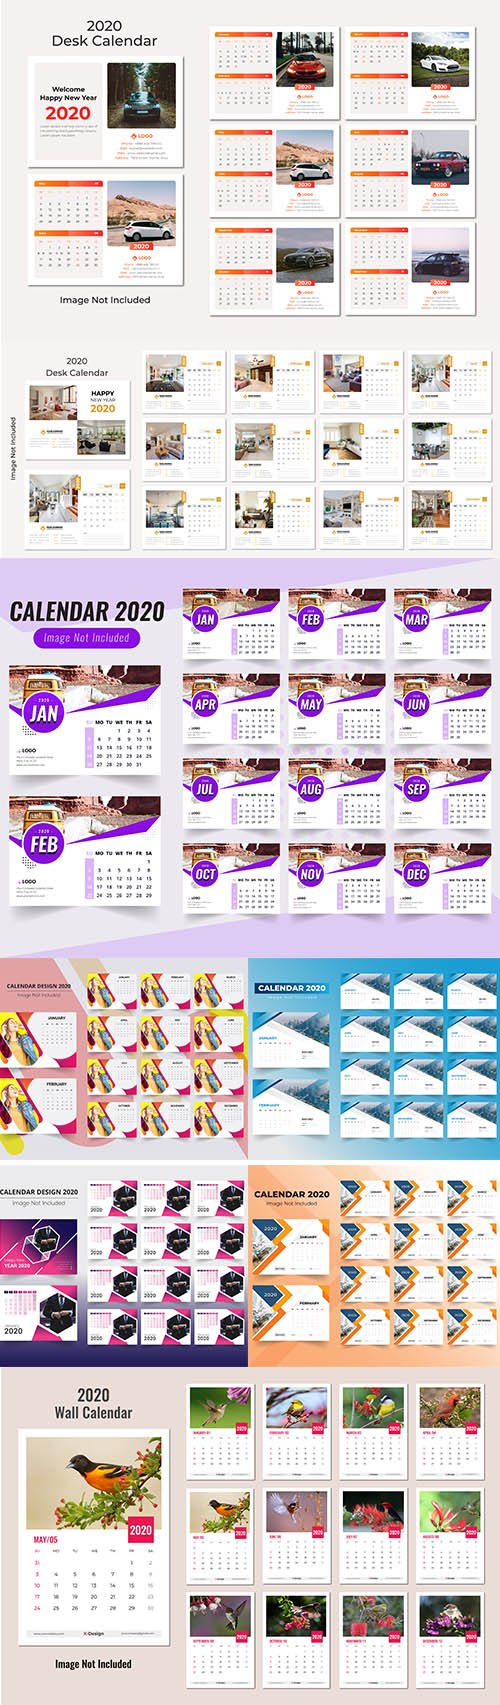 Desk and Wall Calendar 2020 Vector Pack vol.1